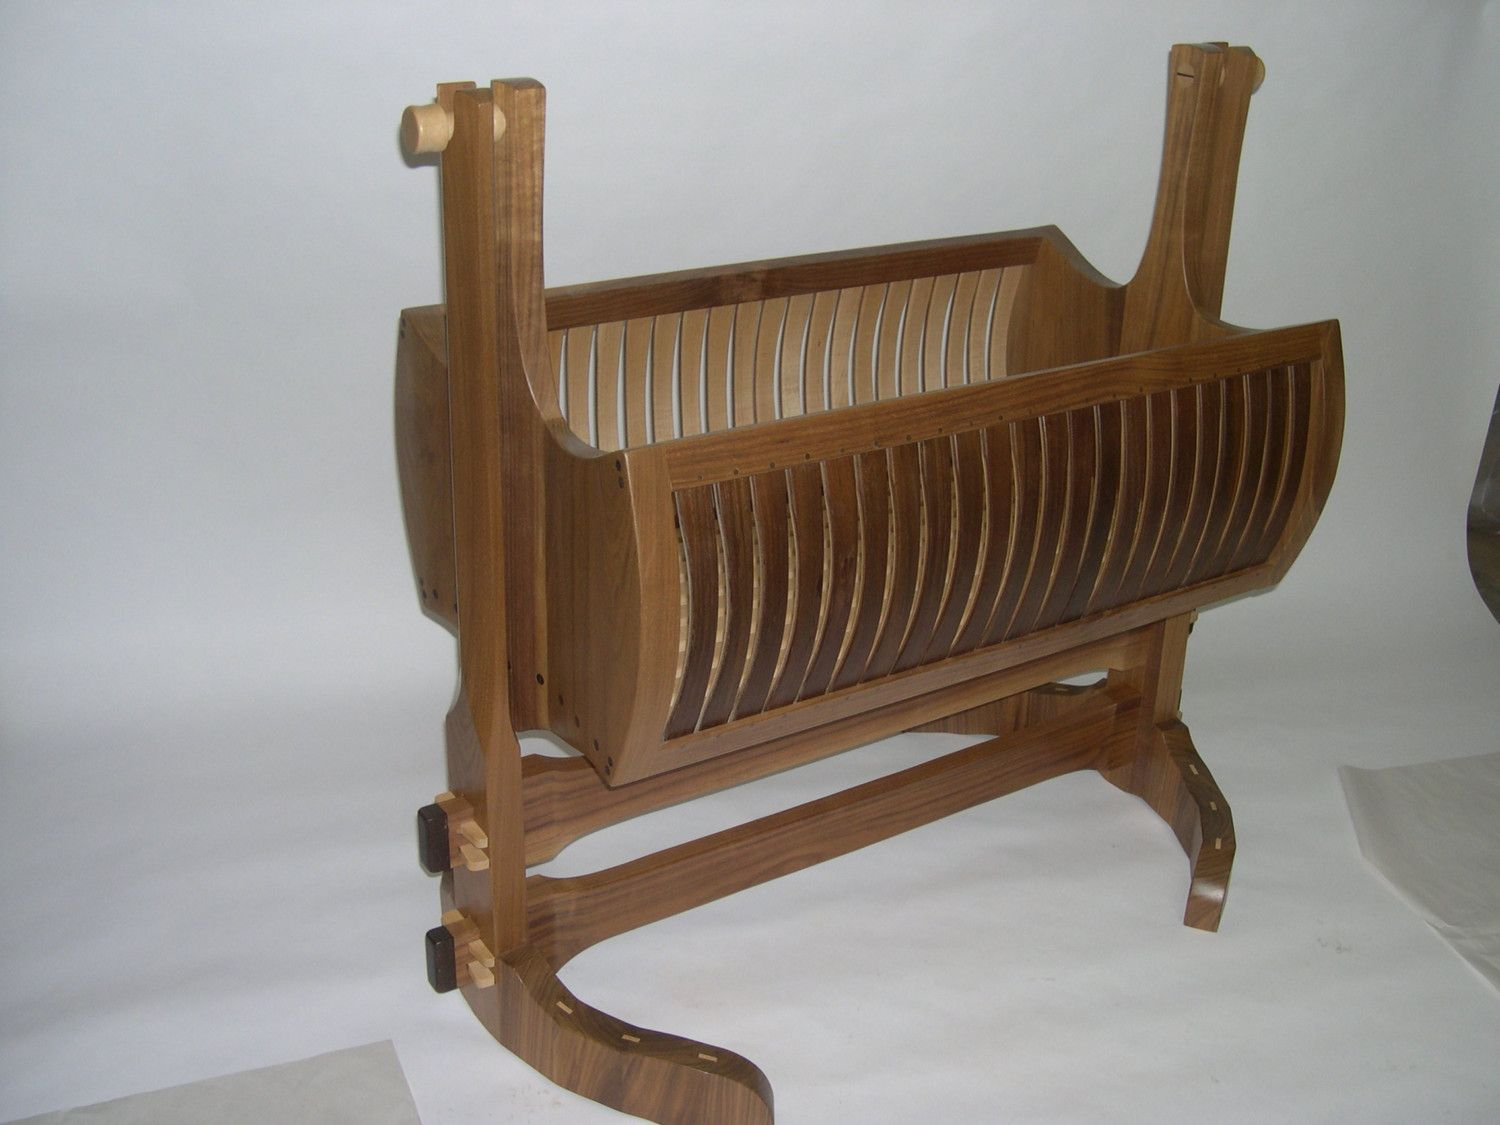 Wooden crib for sale in cebu - Viking Baby Cradle By Steckmestfurniture On Etsy Because You Know If It Has To Do